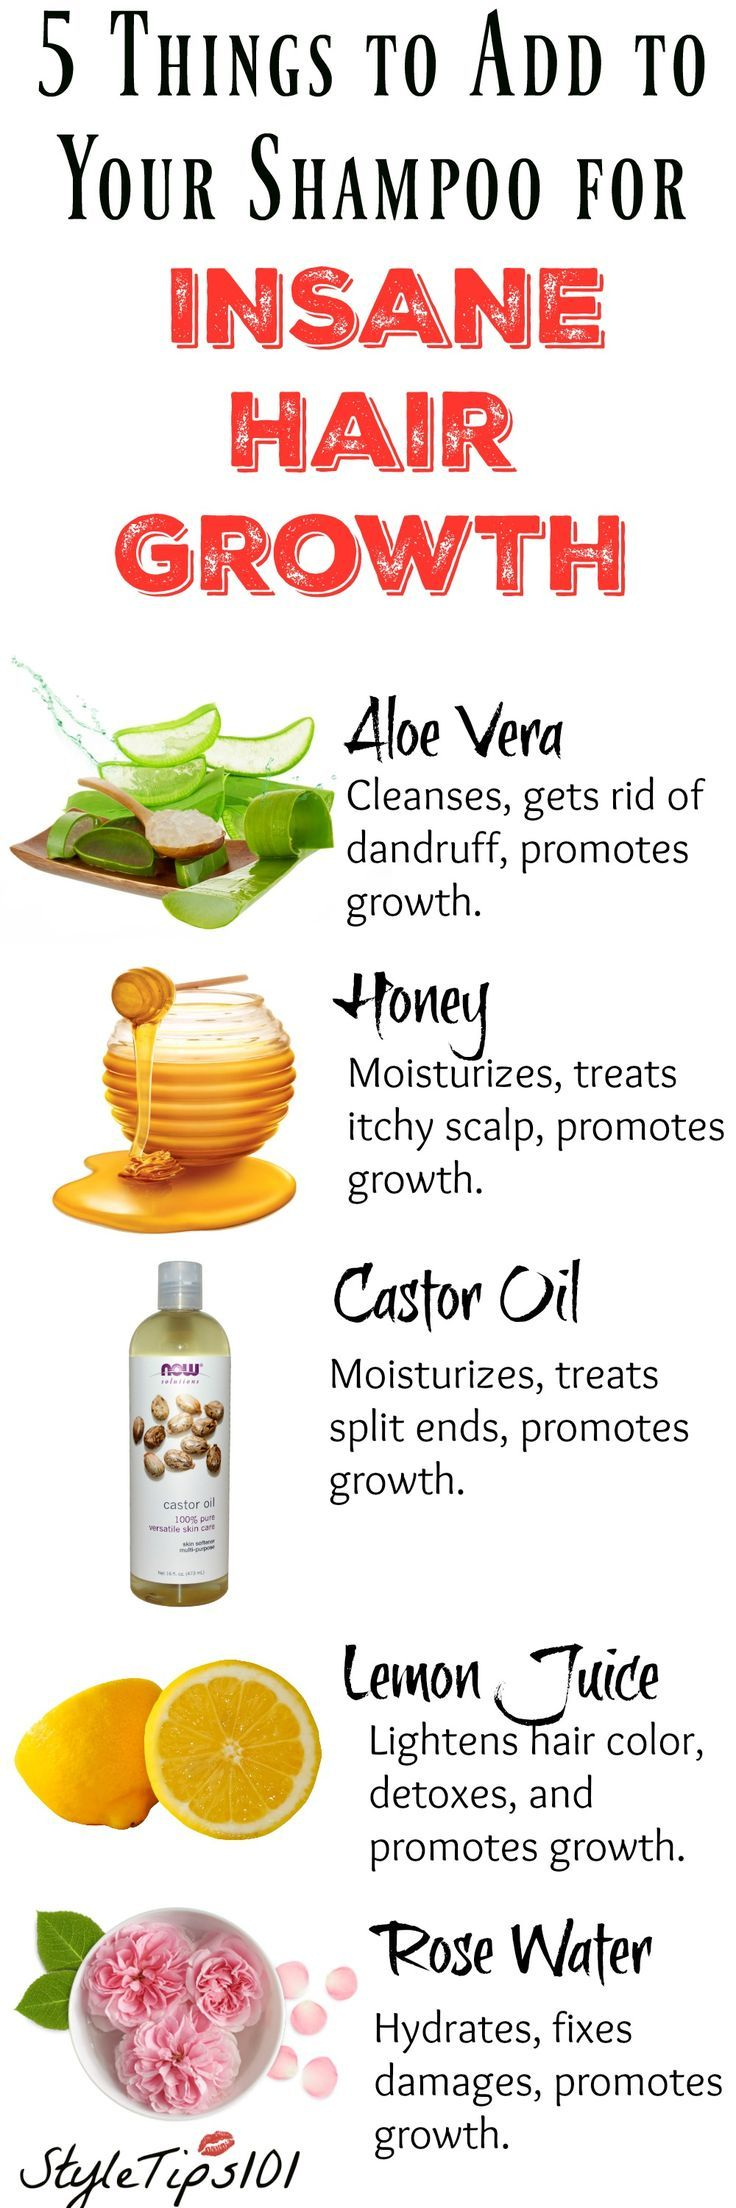 Adding any one of these 5 ingredients to your shampoo bottle will ensure fast growing, healthy hair in no time! #haircare #hairgrowth #medicalcentre #macquariestreetmedicalcentre #medicalpractice